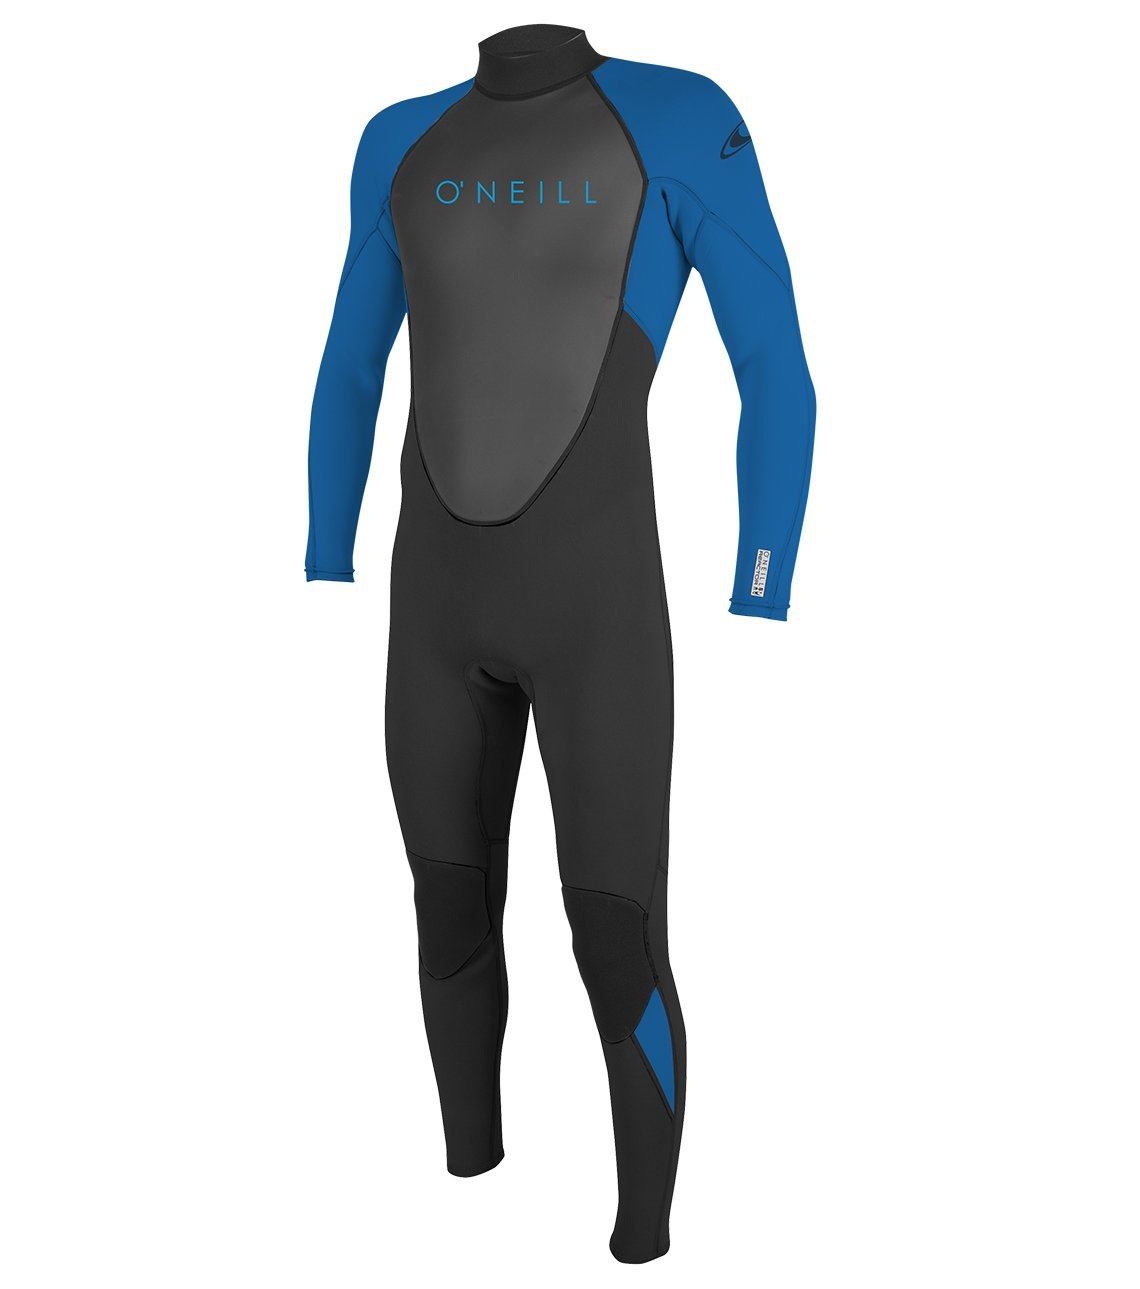 O'Neill Youth Reactor-2 3/2mm Back Zip Full Wetsuit, Black/Ocean, 4 by O'Neill Wetsuits (Image #1)